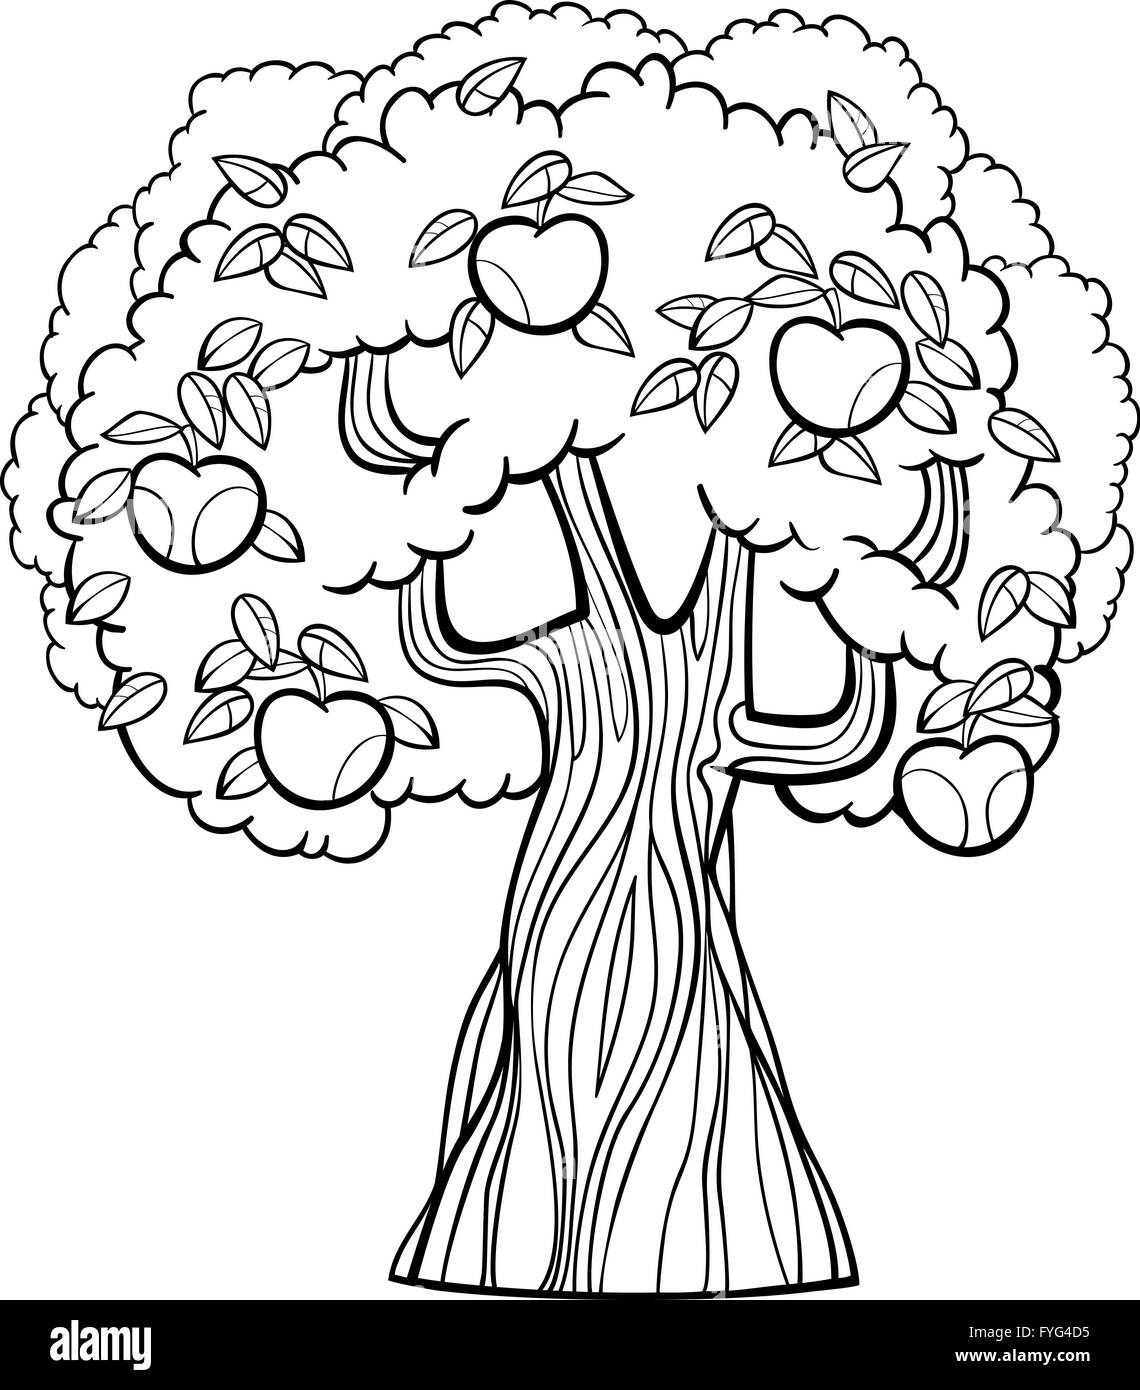 apple tree cartoon for coloring book Stock Photo: 103002289 - Alamy